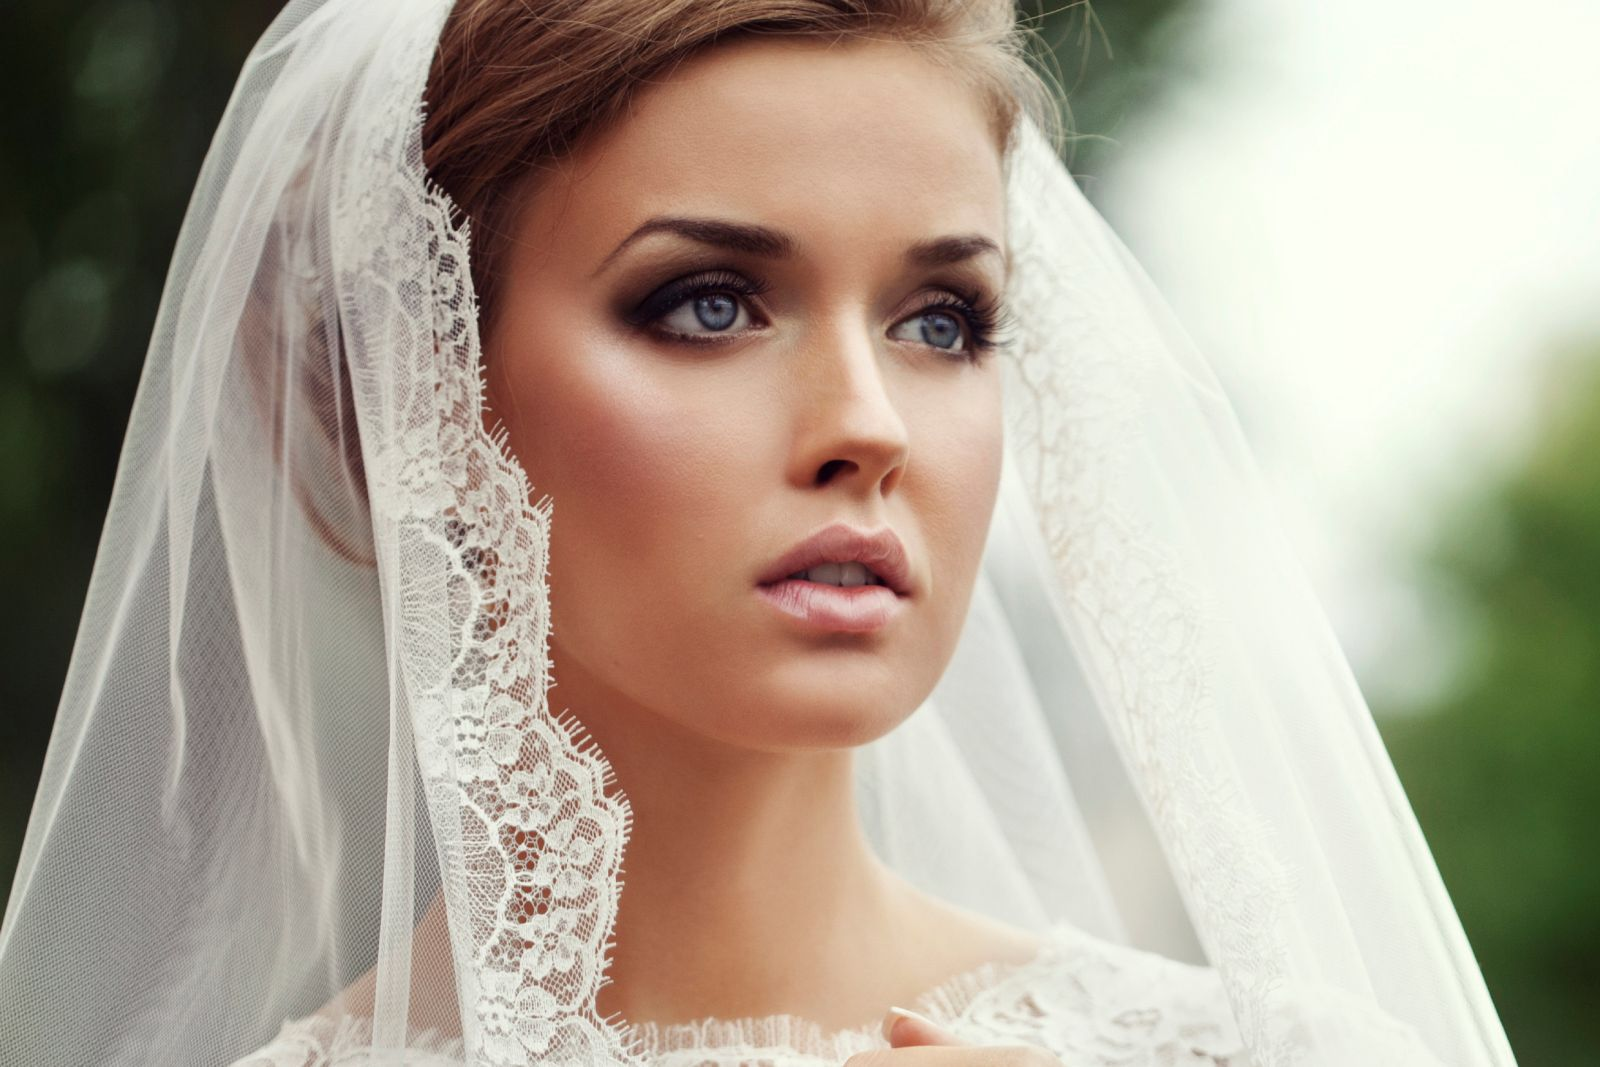 This bridal look would be the definition of exquisite high-end elegance with Lotus Mink